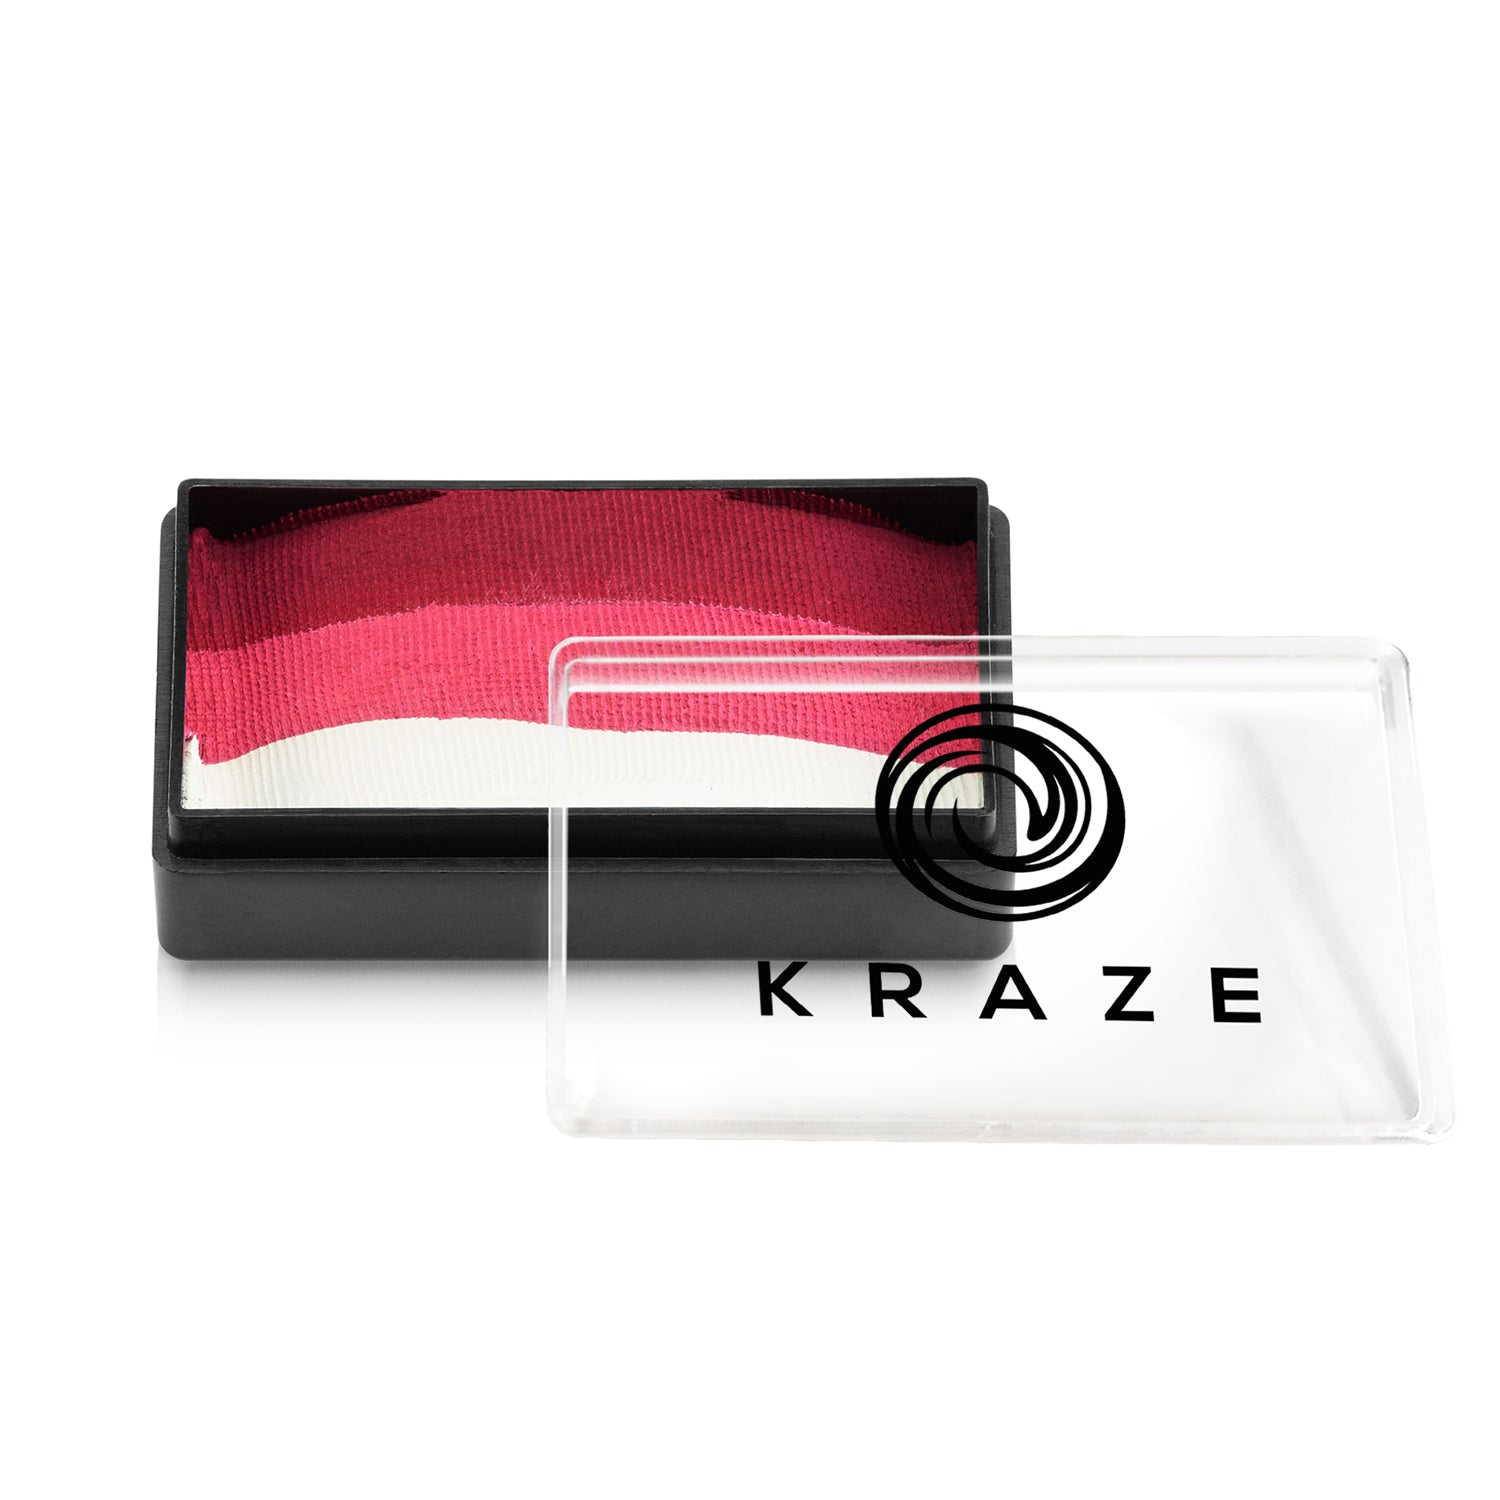 Kraze FX Dome Stroke - 25 gm - Bloodberry